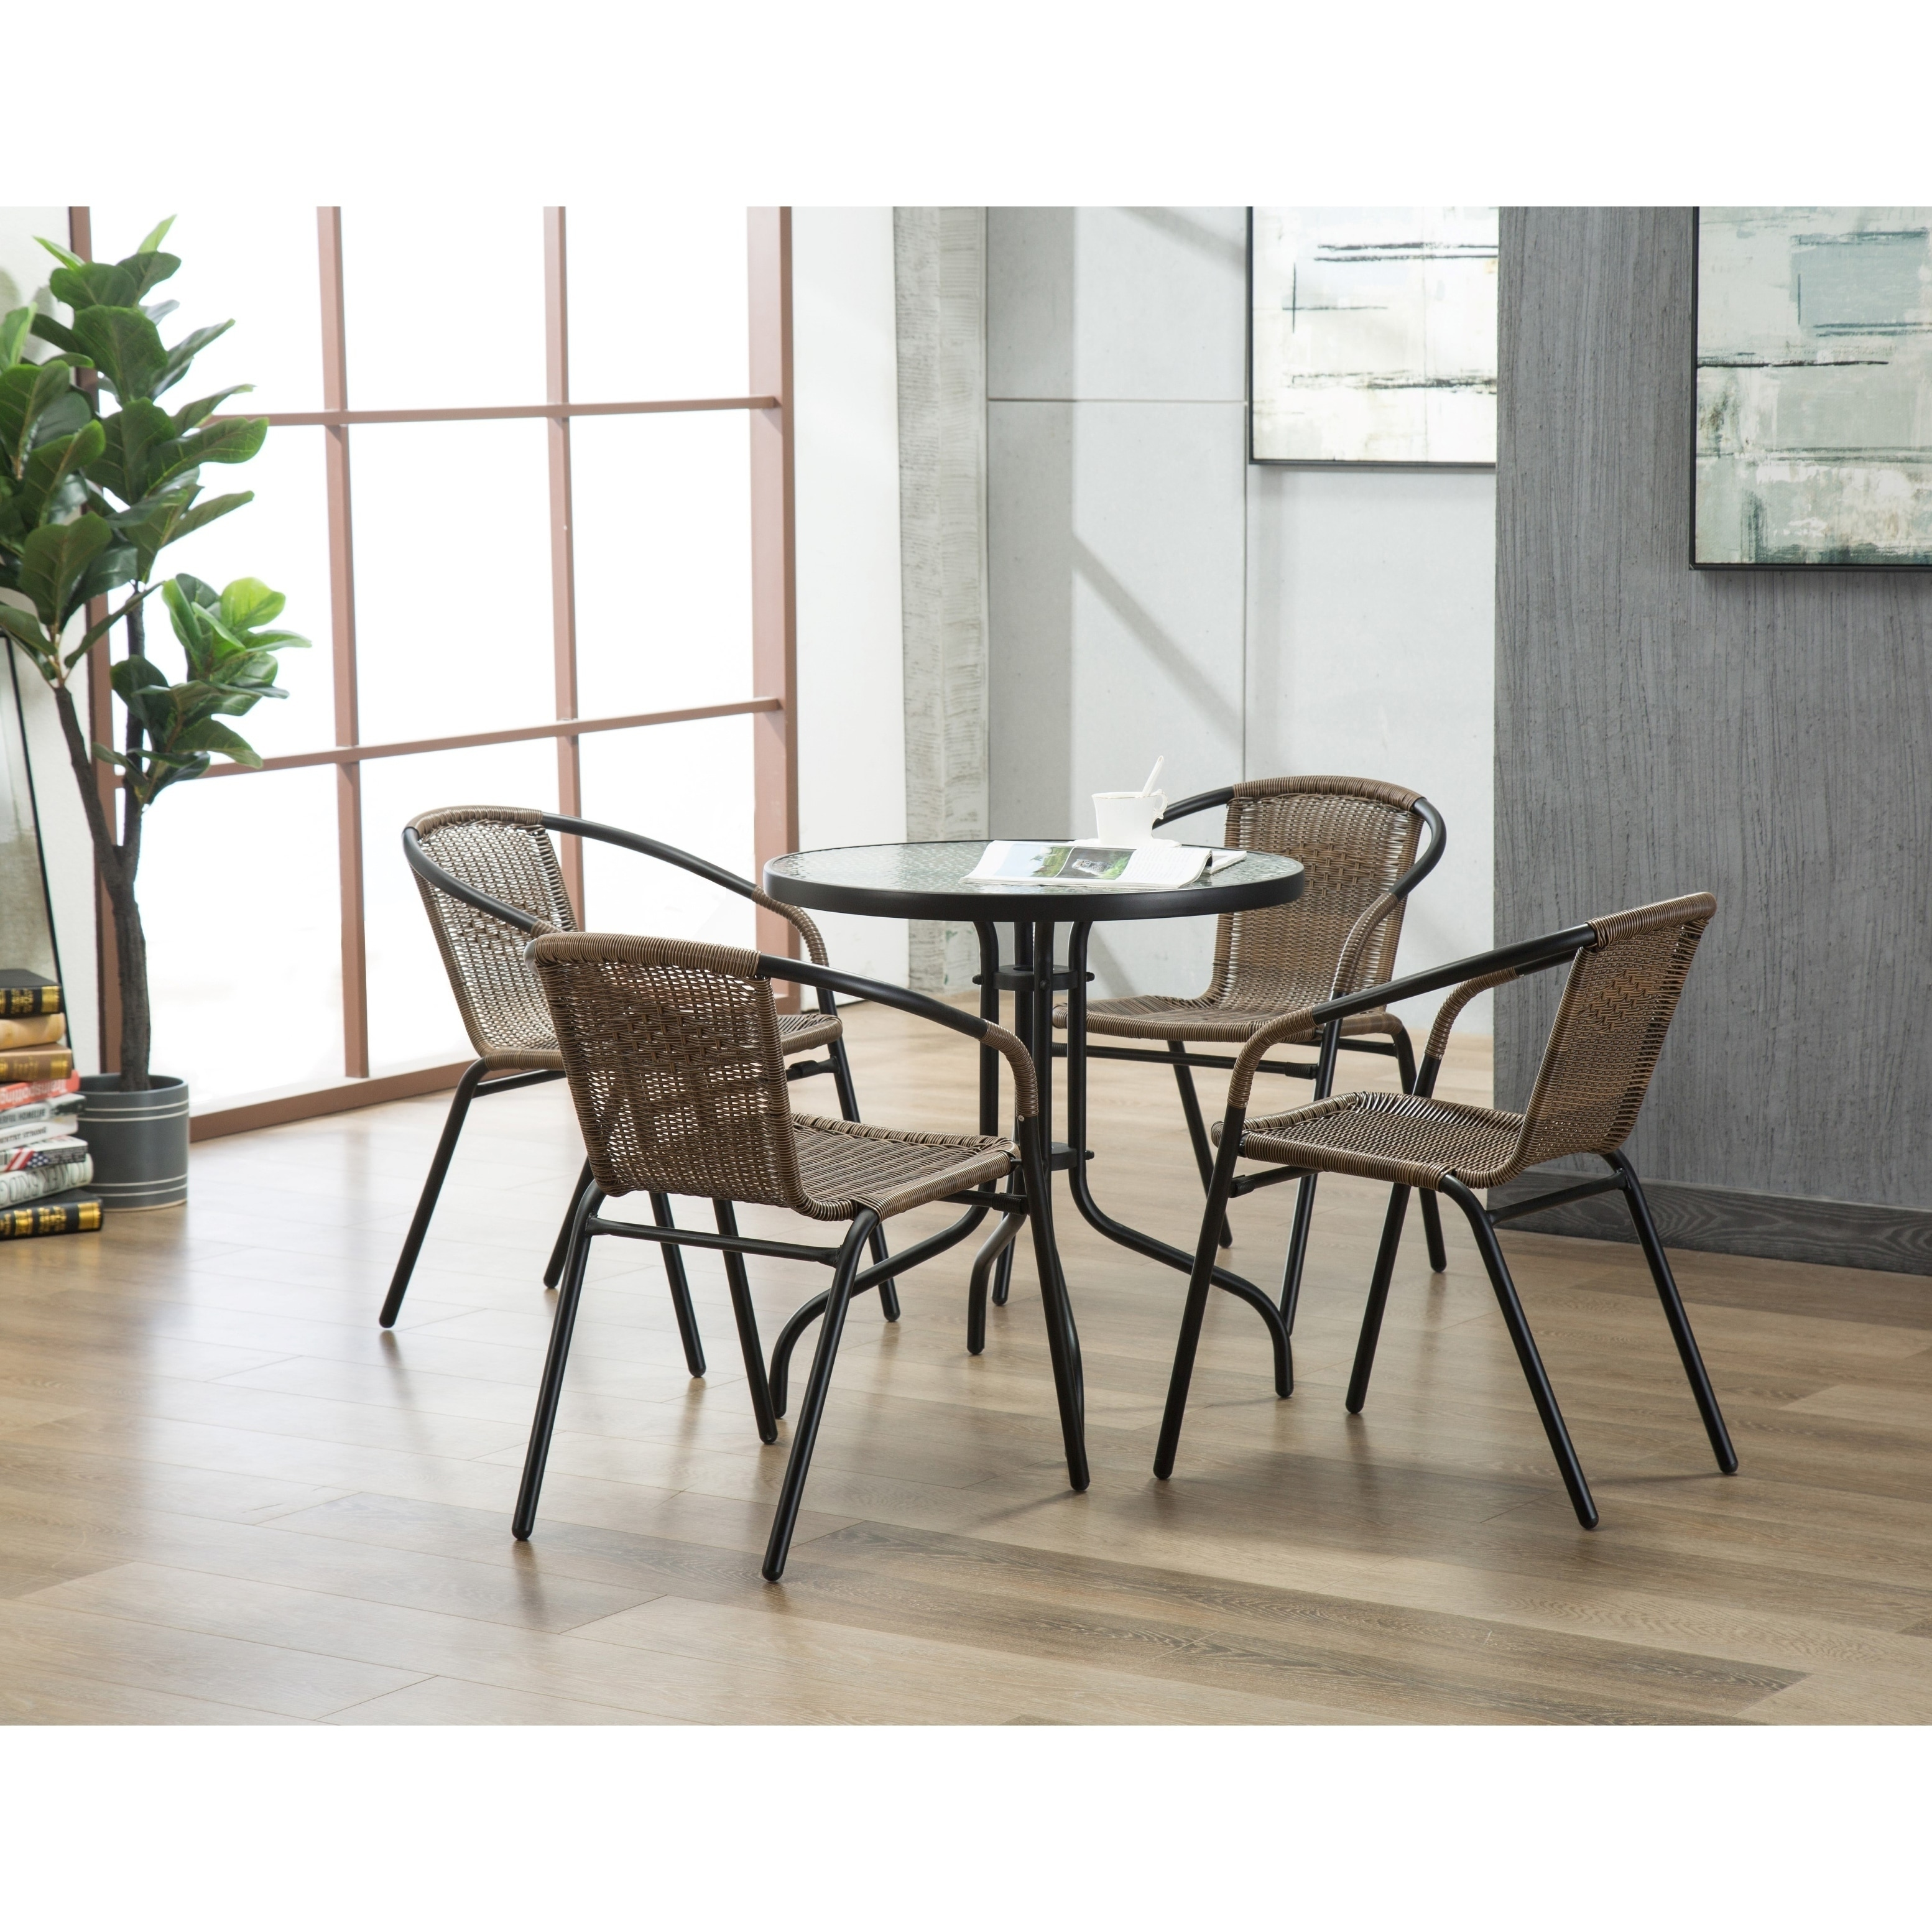 Rattan Chairs The Curated Nomad Clopin Indoor Outdoor Rattan Chairs Set Of 4